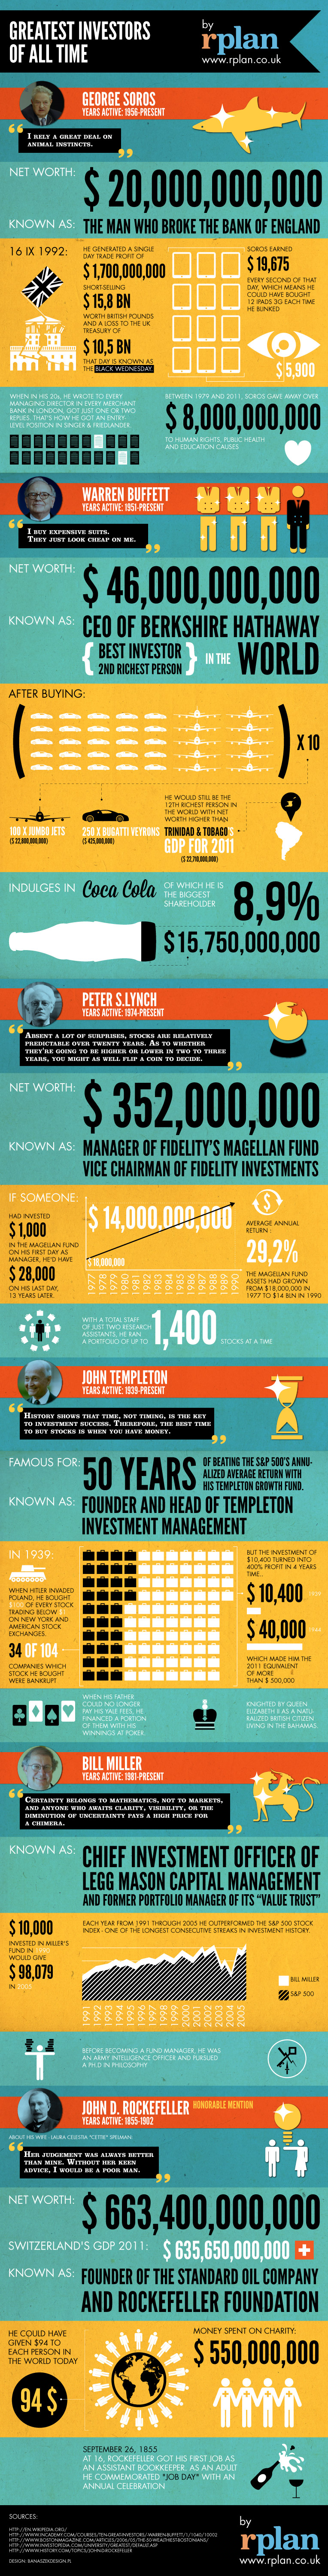 greatest-investors-of-all-time--rplan-infographic_508fc7582c764